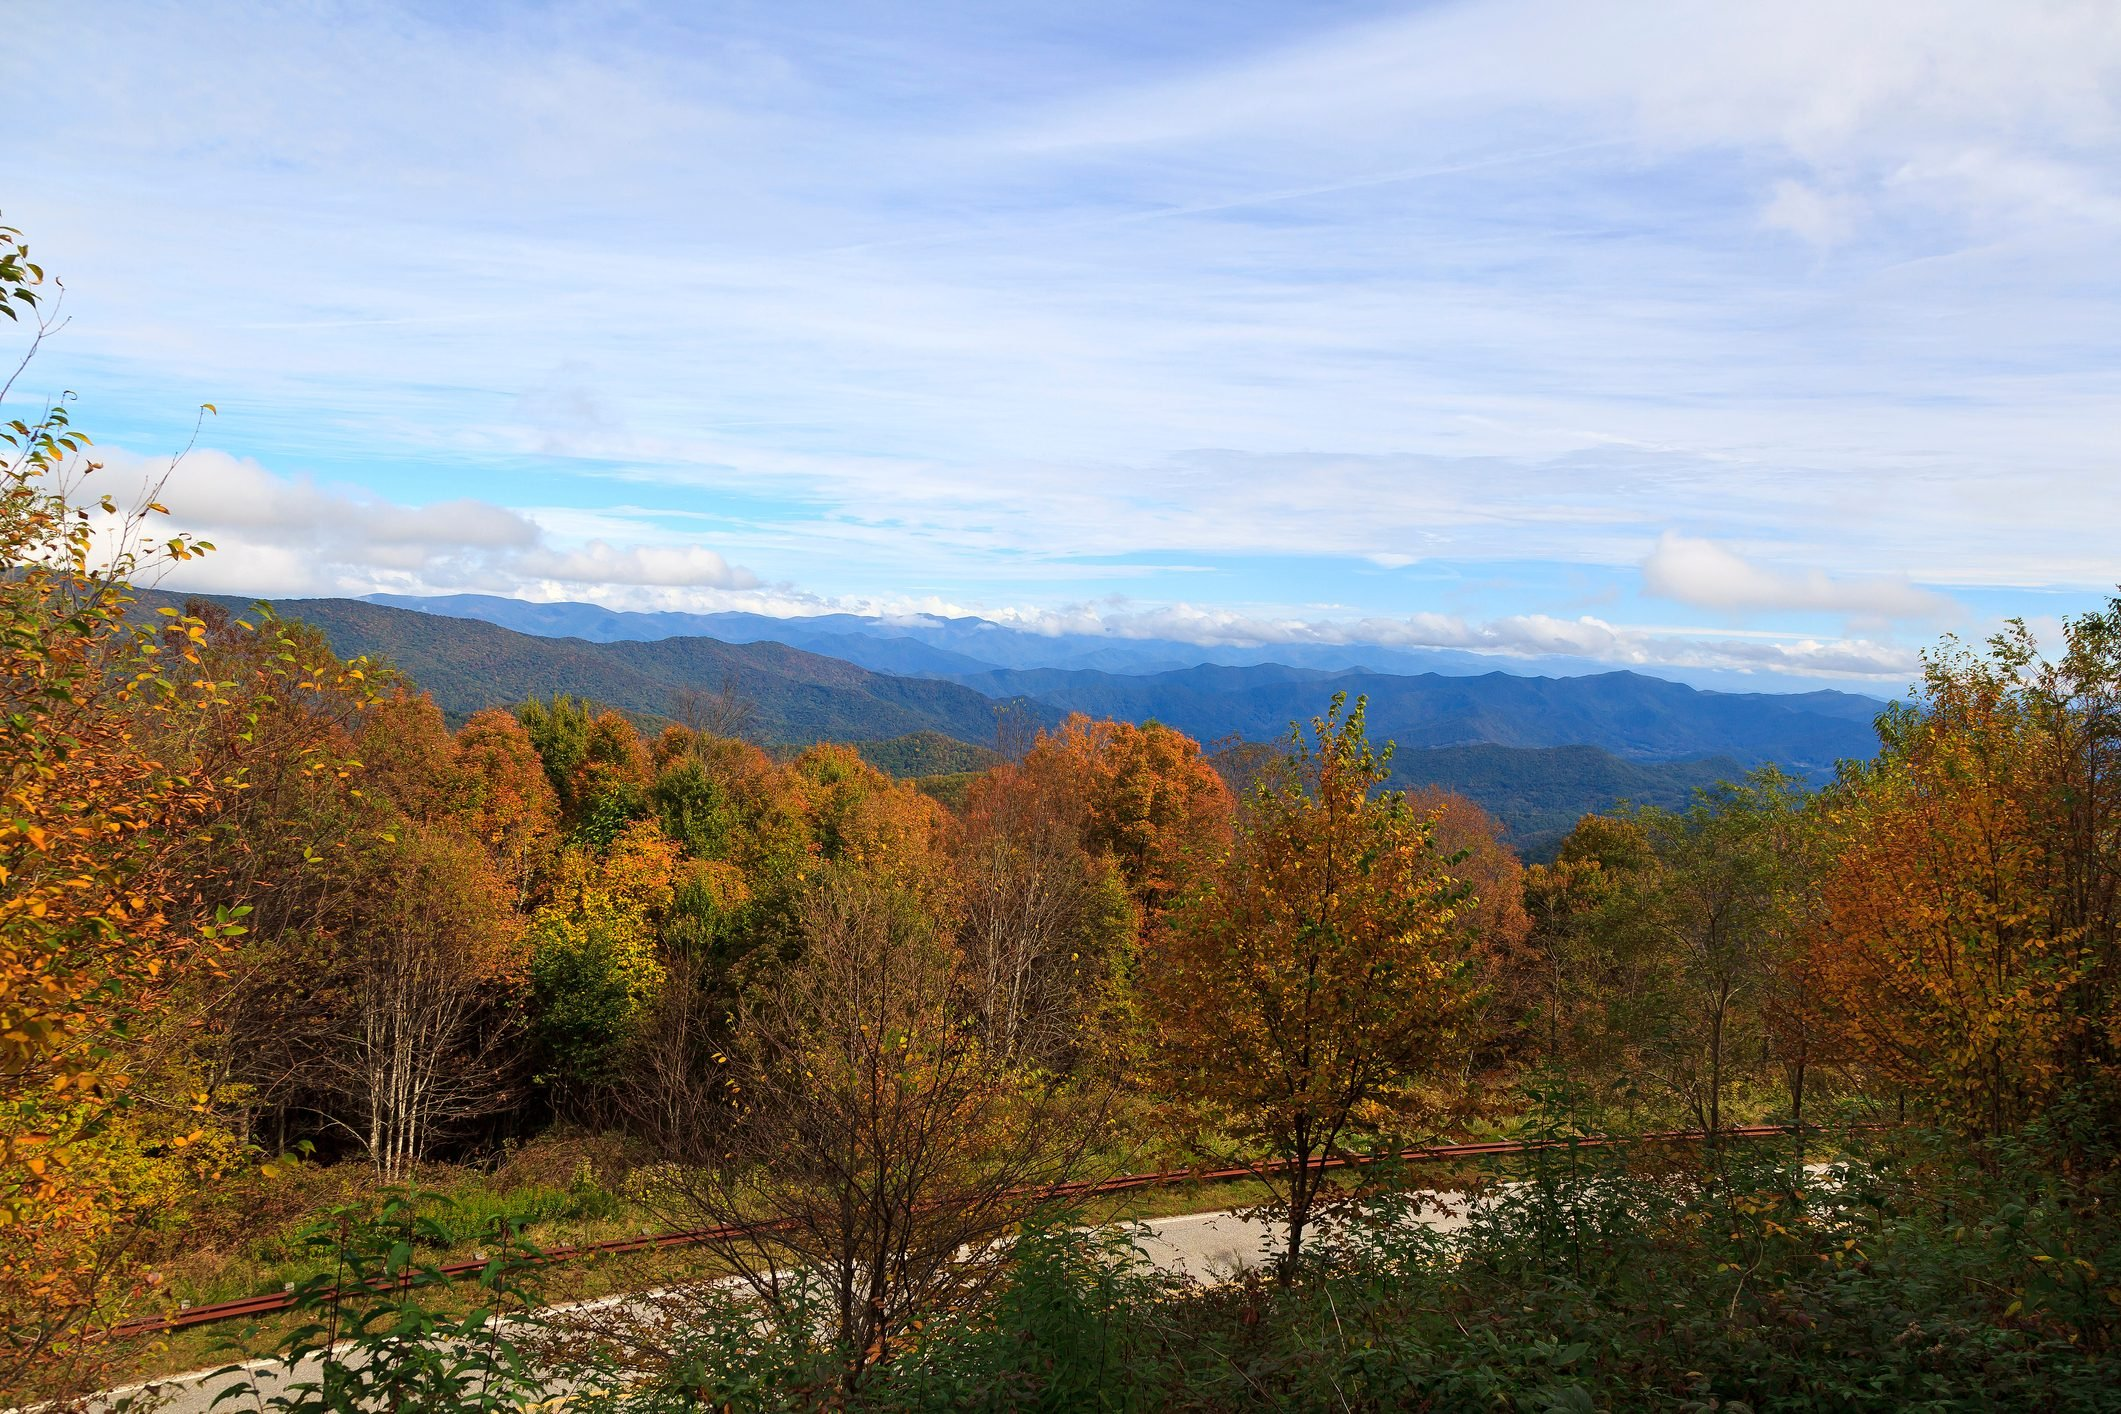 Part of the Cherohala Skyway, TN, in the fall with vast view of mountains